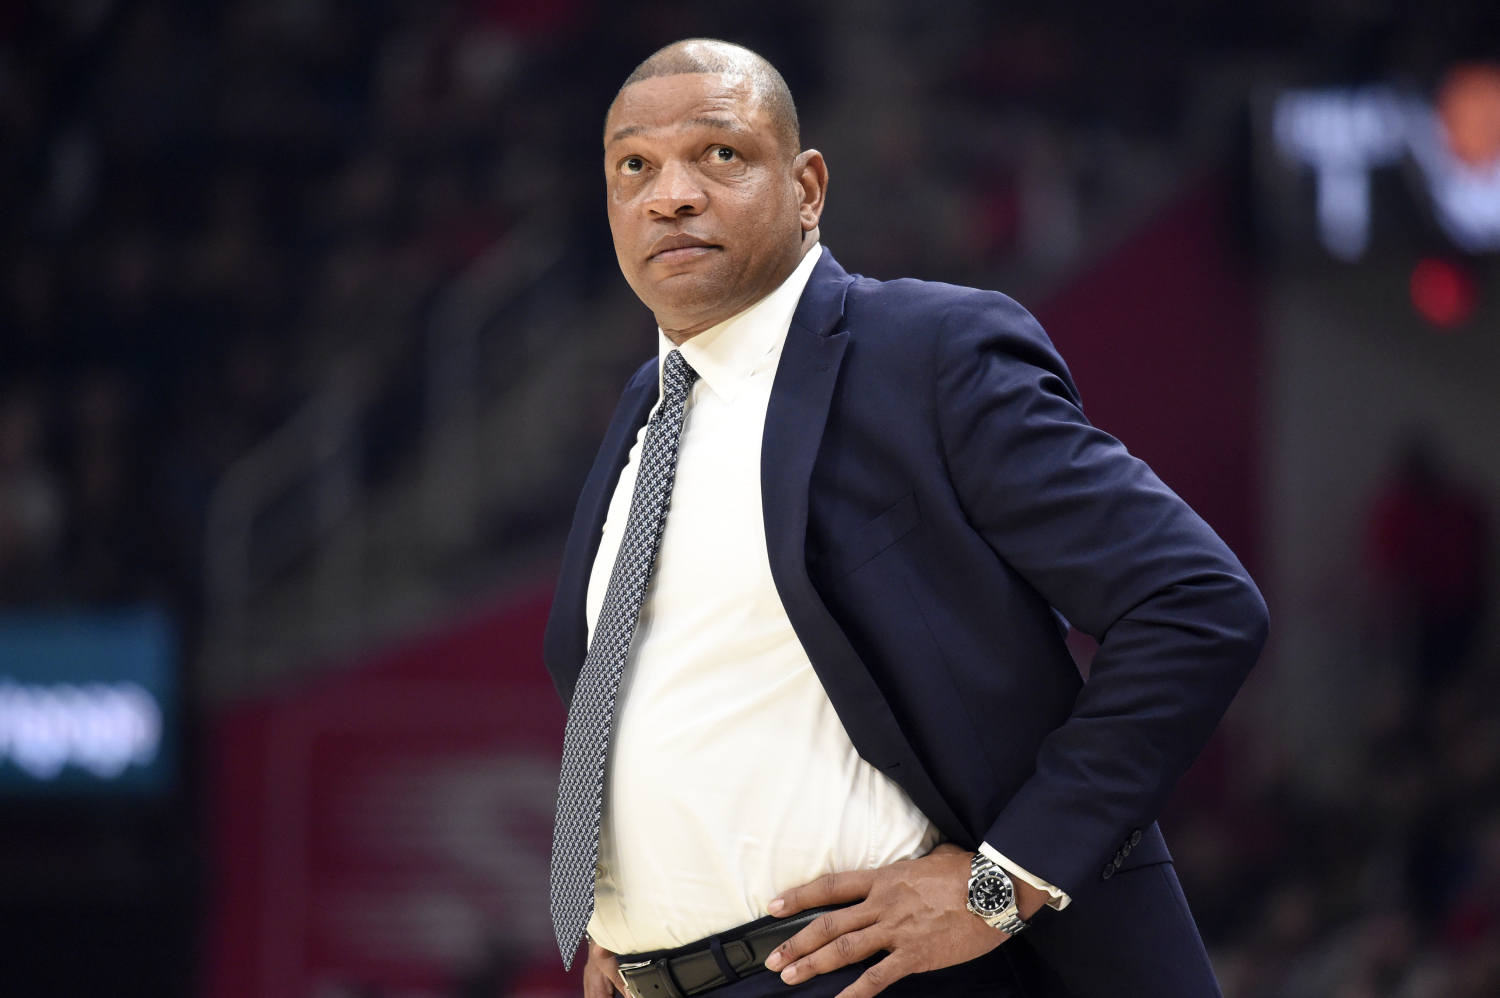 Doc Rivers is the new coach of the 76ers now. After parting ways with the Clippers, though, Rivers was ready to take a break from coaching.